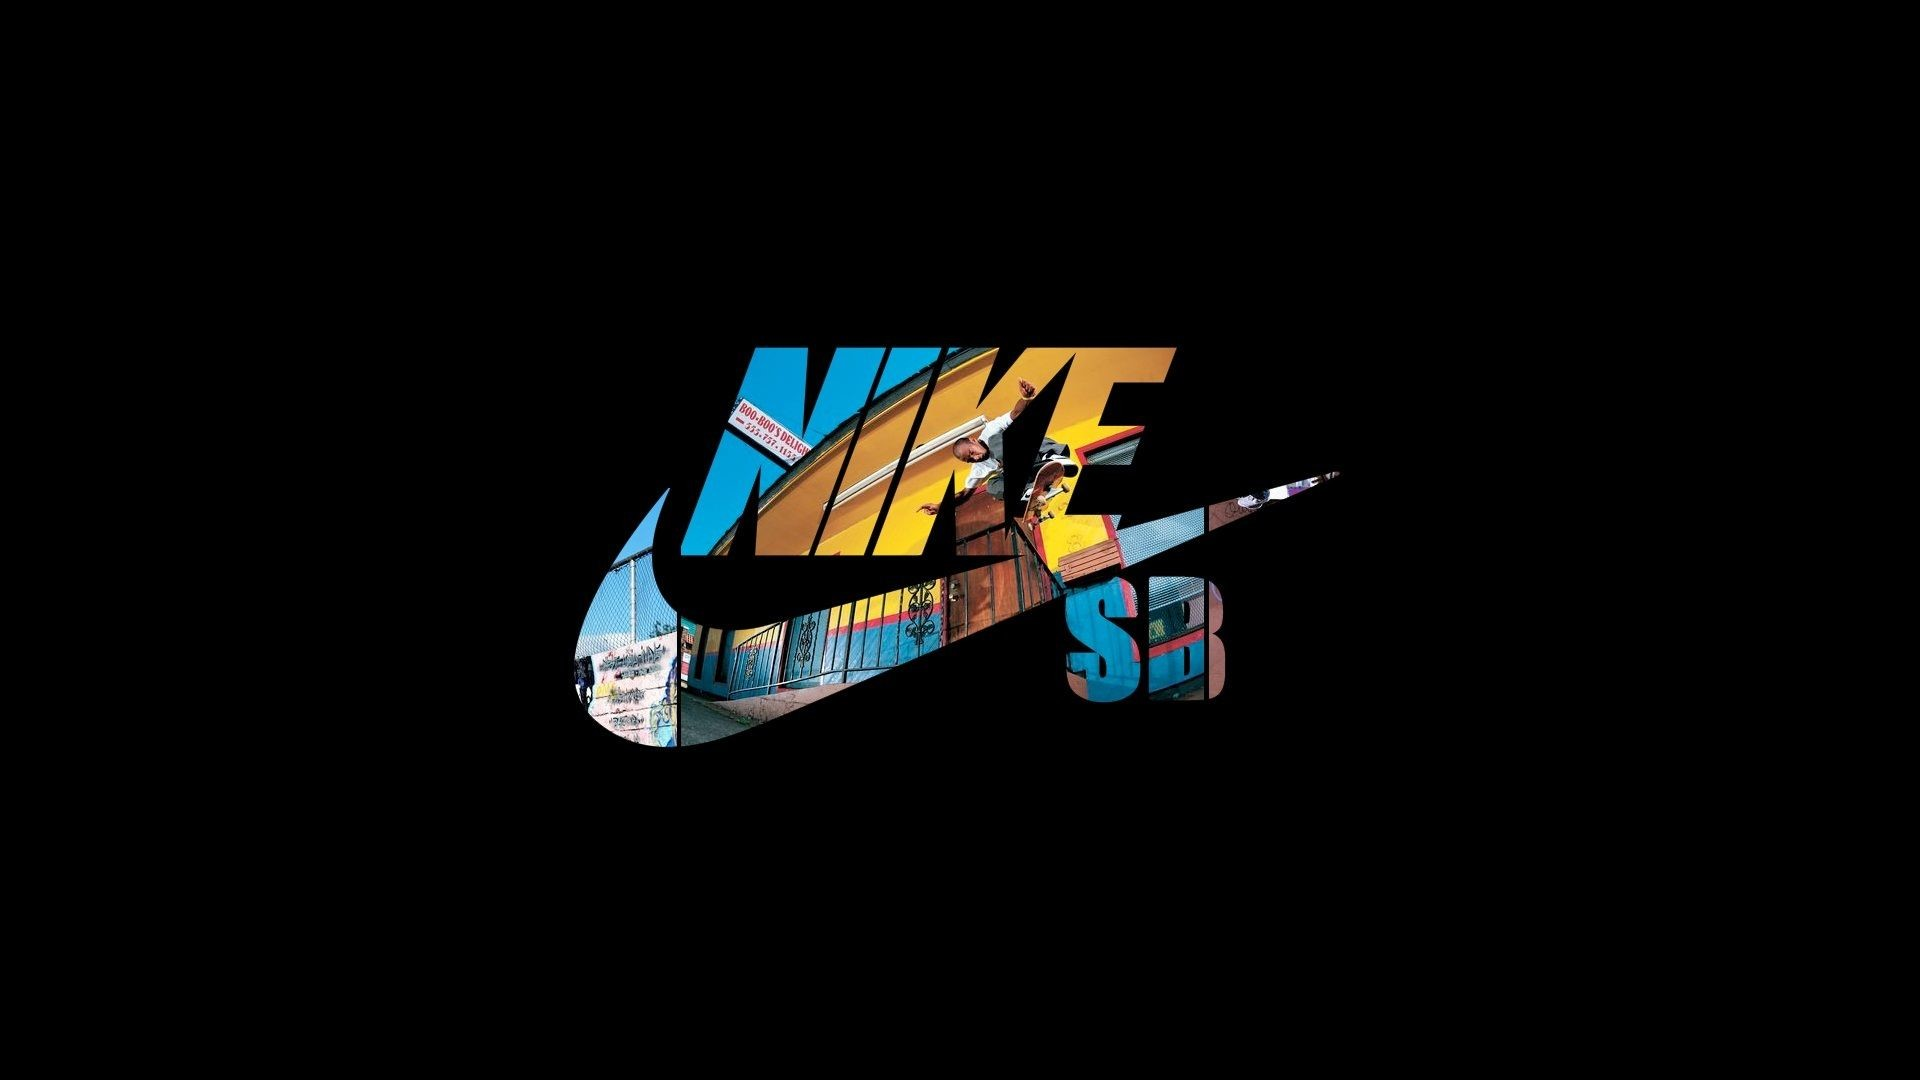 Res: 1920x1080, Nike, Just Do It, Logo, Black Background - HD wallpapers